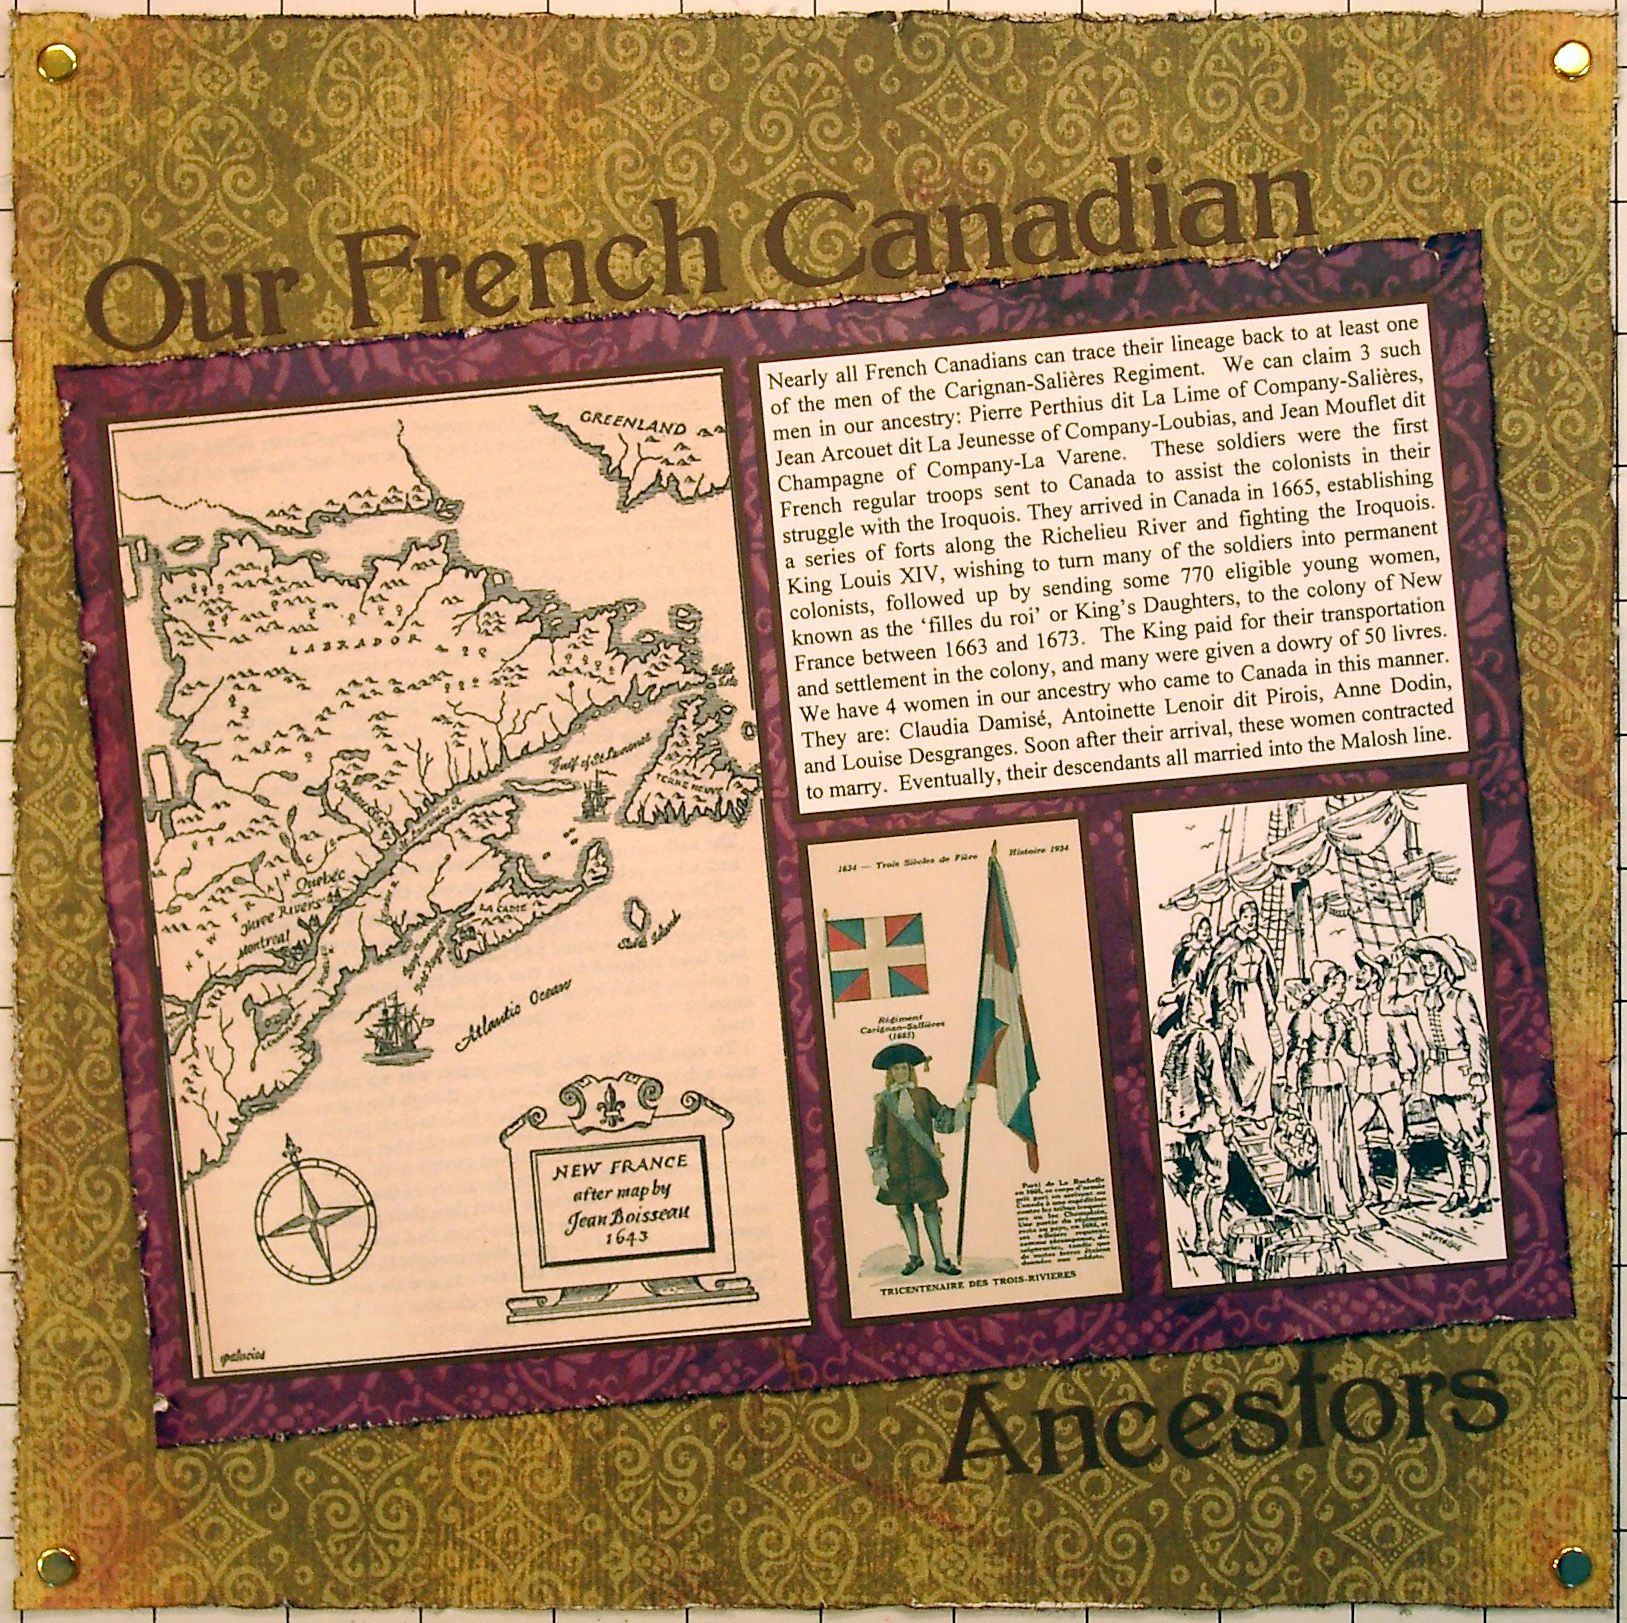 How to scrapbook your family tree - Our French Canadian Ancestors Scrapbook Com Canadian Thingsheritage Scrapbookingfamily Treeso